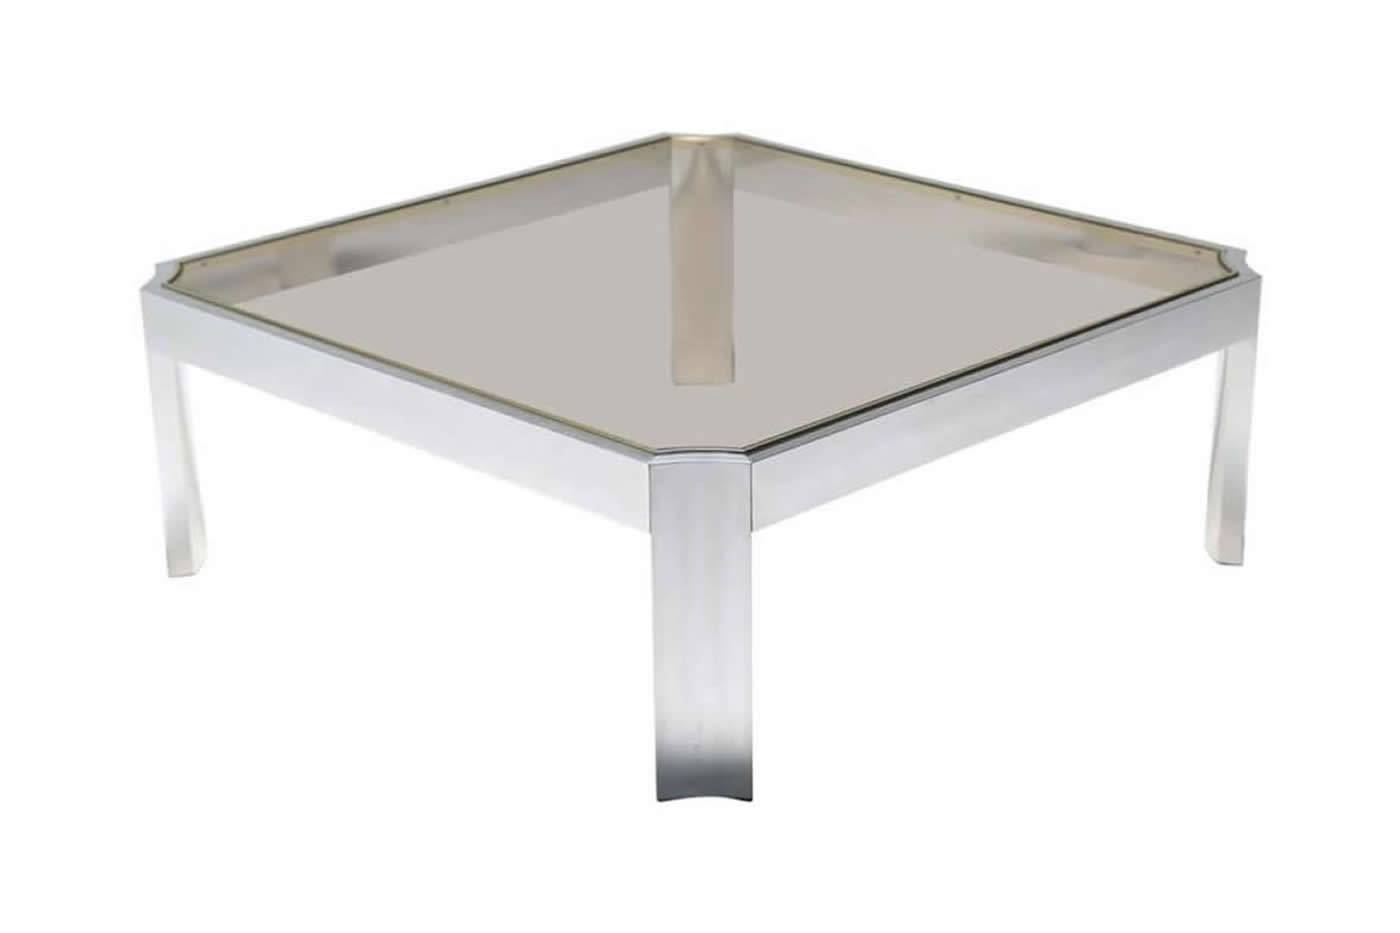 Ron Seff Style Glass Coffee Table With Aluminium Base | Mid with Aluminium Coffee Tables (Image 27 of 30)